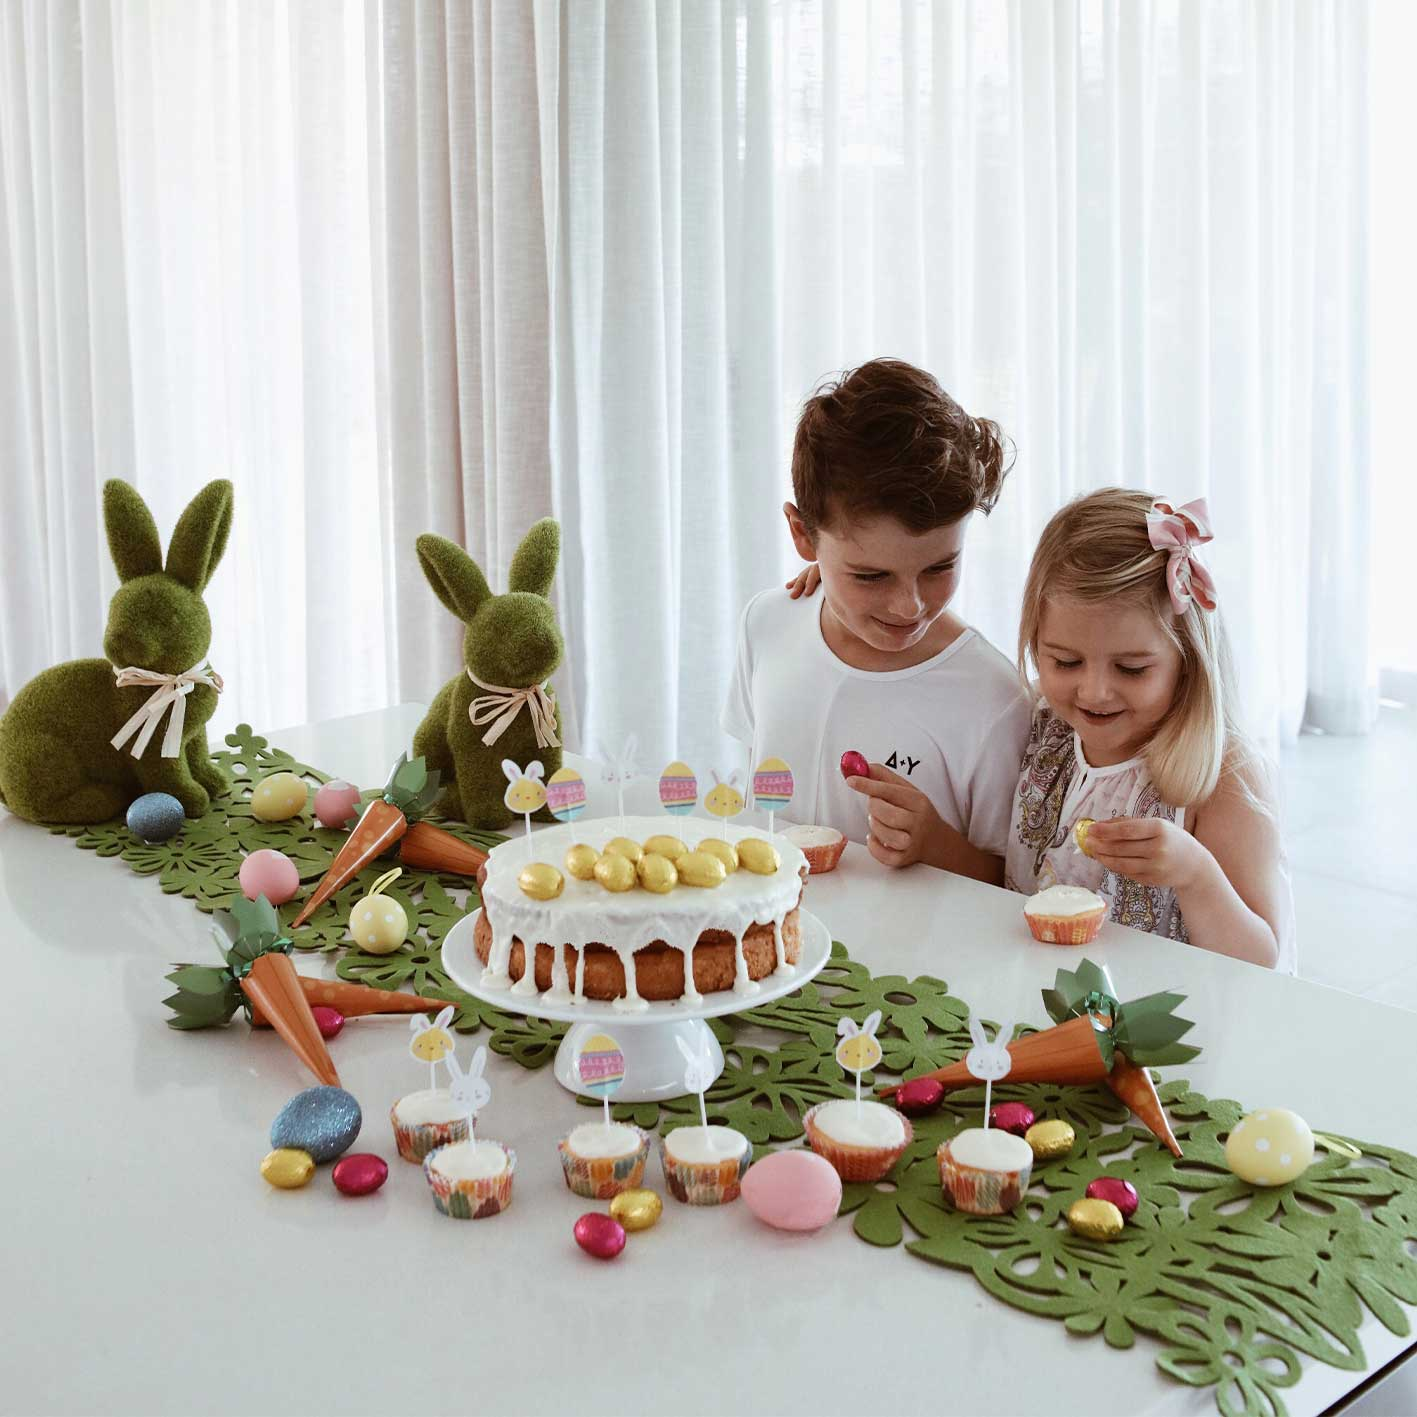 How to run an effective Easter campaign on social media